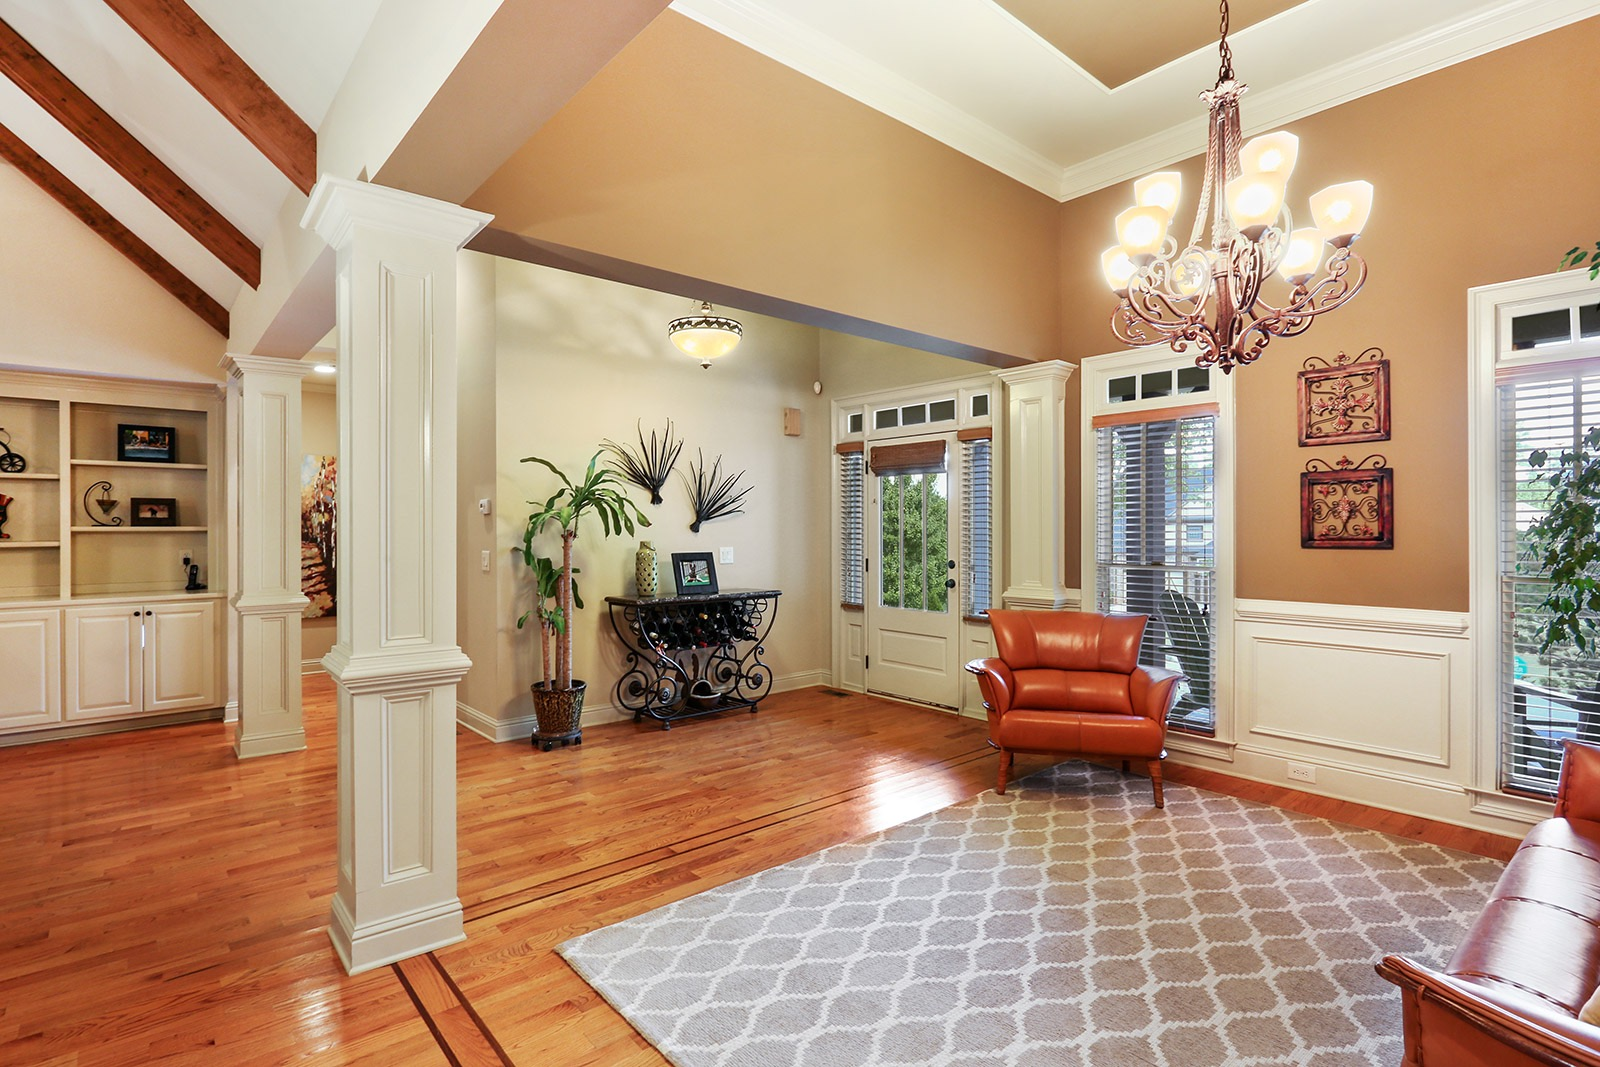 quality craftsman home in woodstock the formal dining room has columns extensive molding and trim and a beautiful chandelier the front door has custom sun tinted windows for privacy